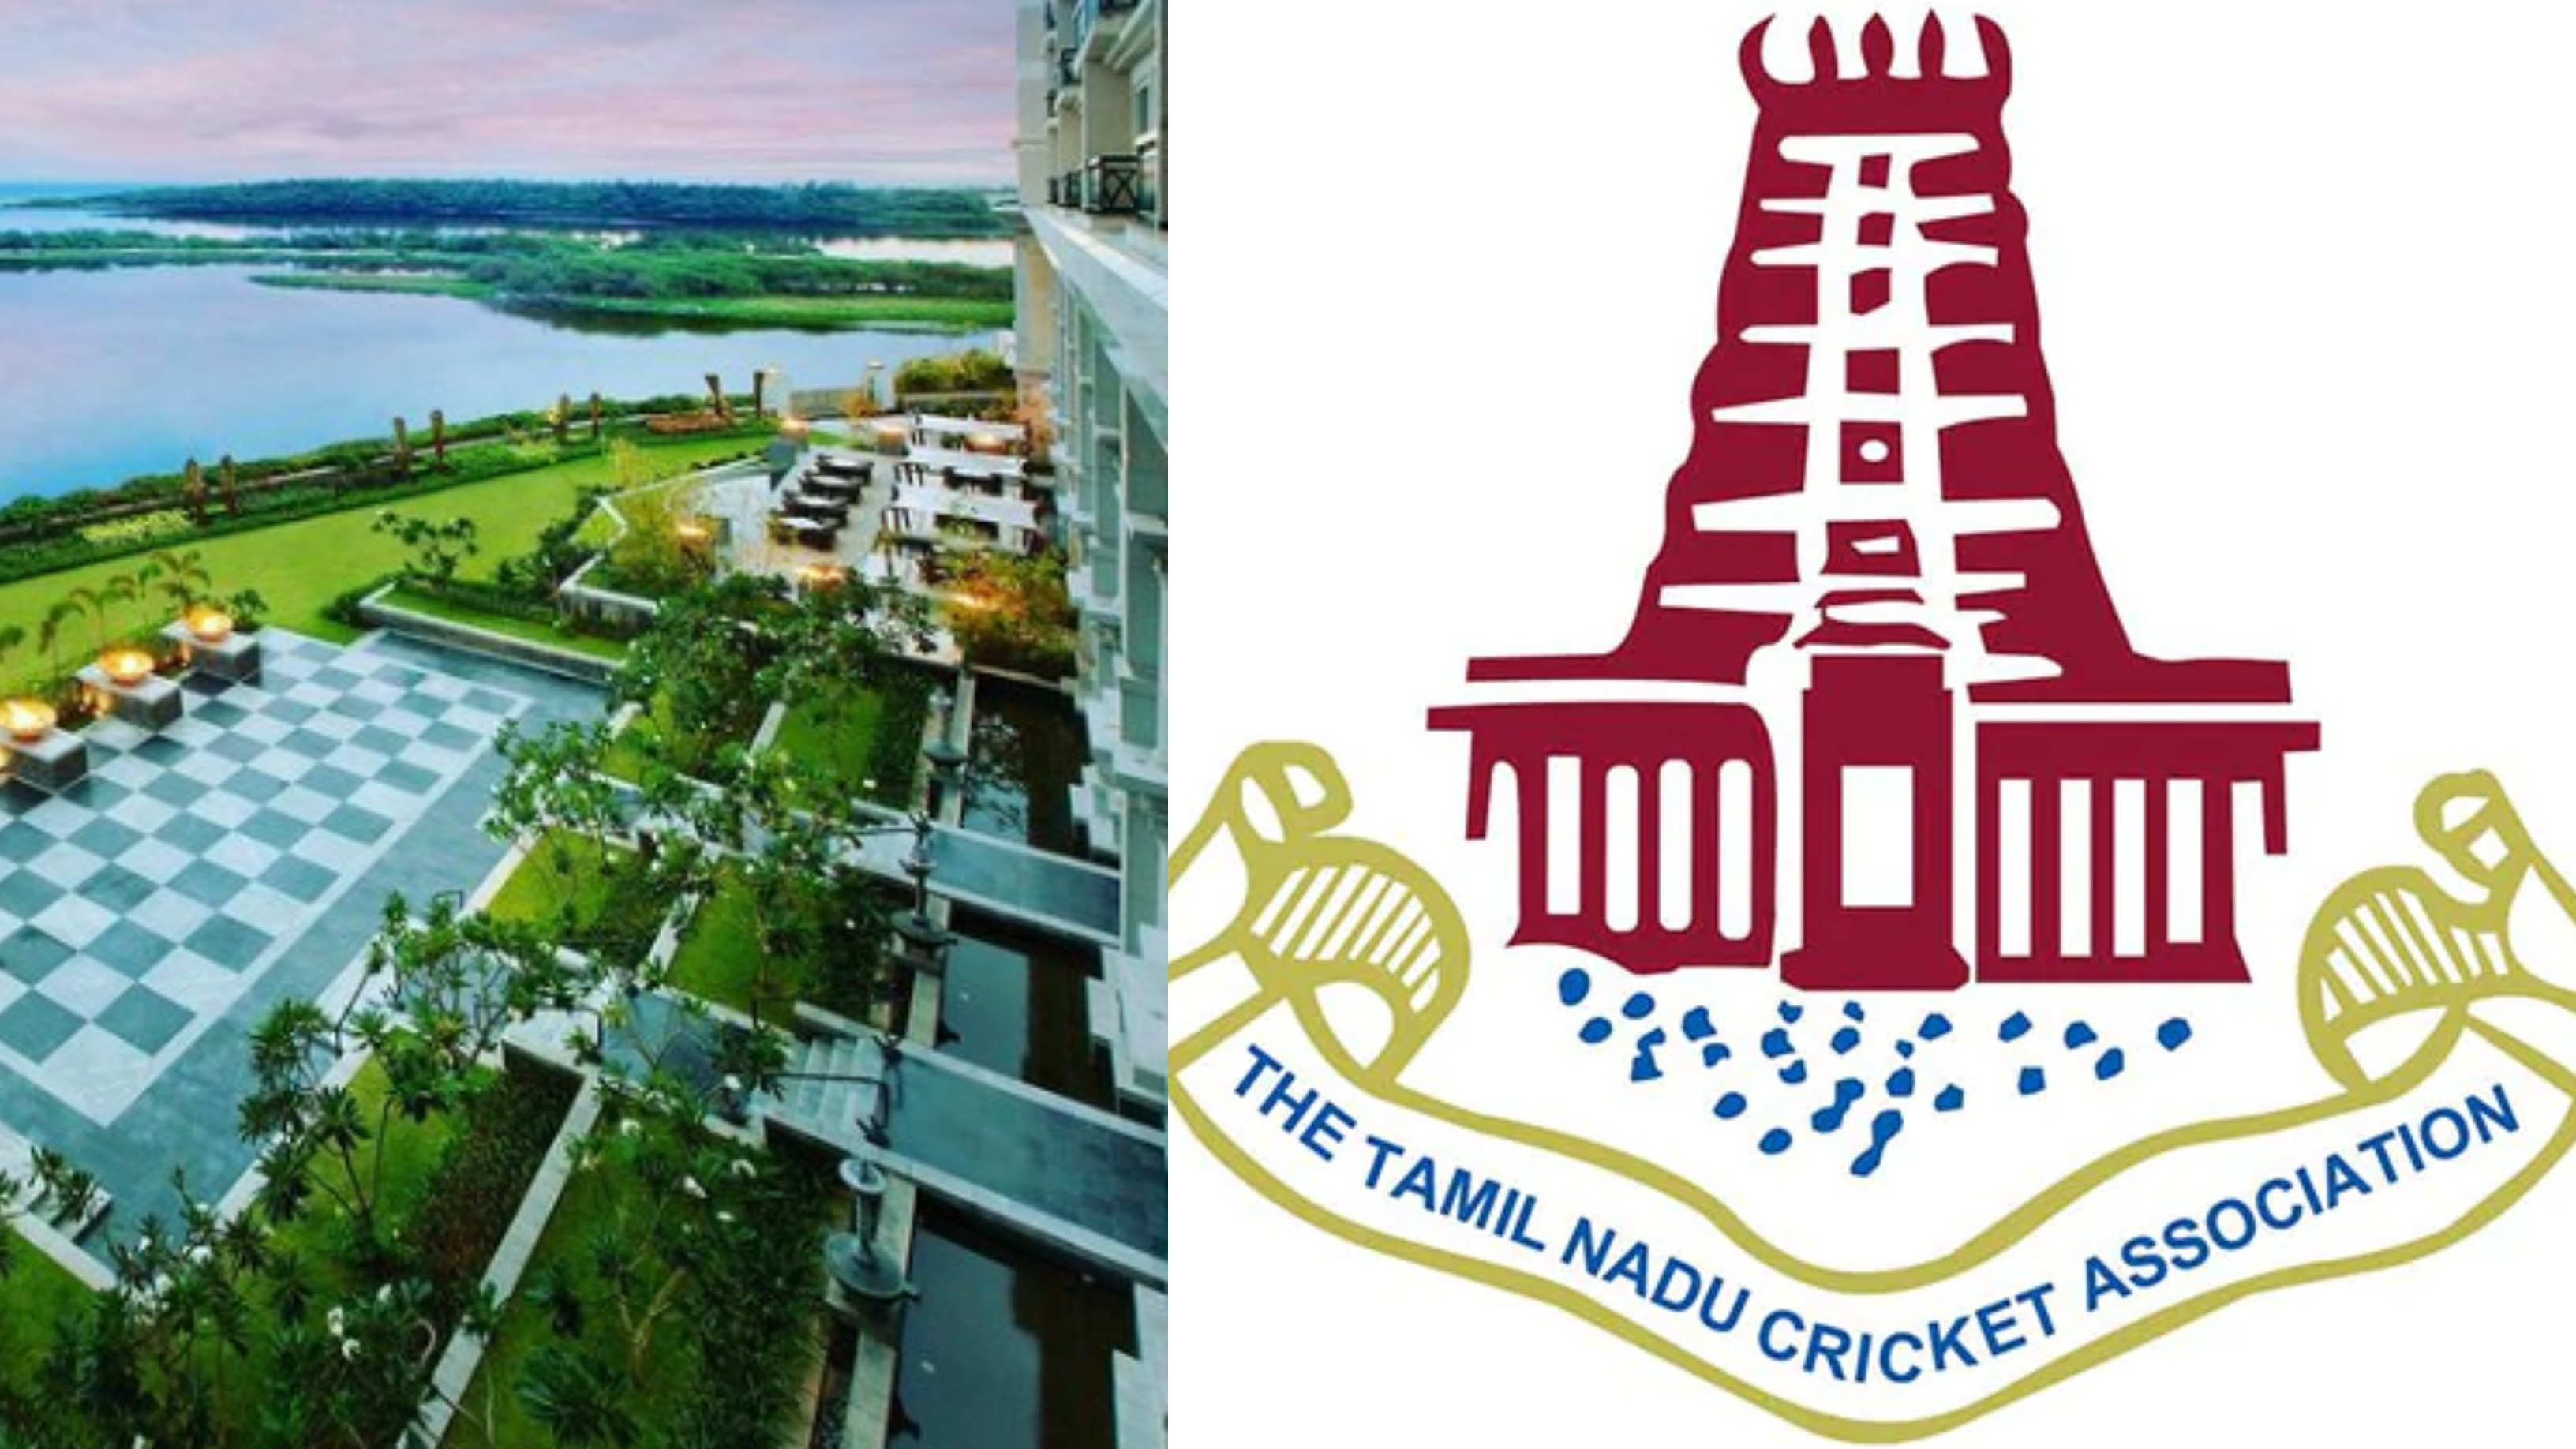 TNCA official claims Syed Mushtaq Ali Trophy bound players are safe in Chennai's COVID-19-hit hotel